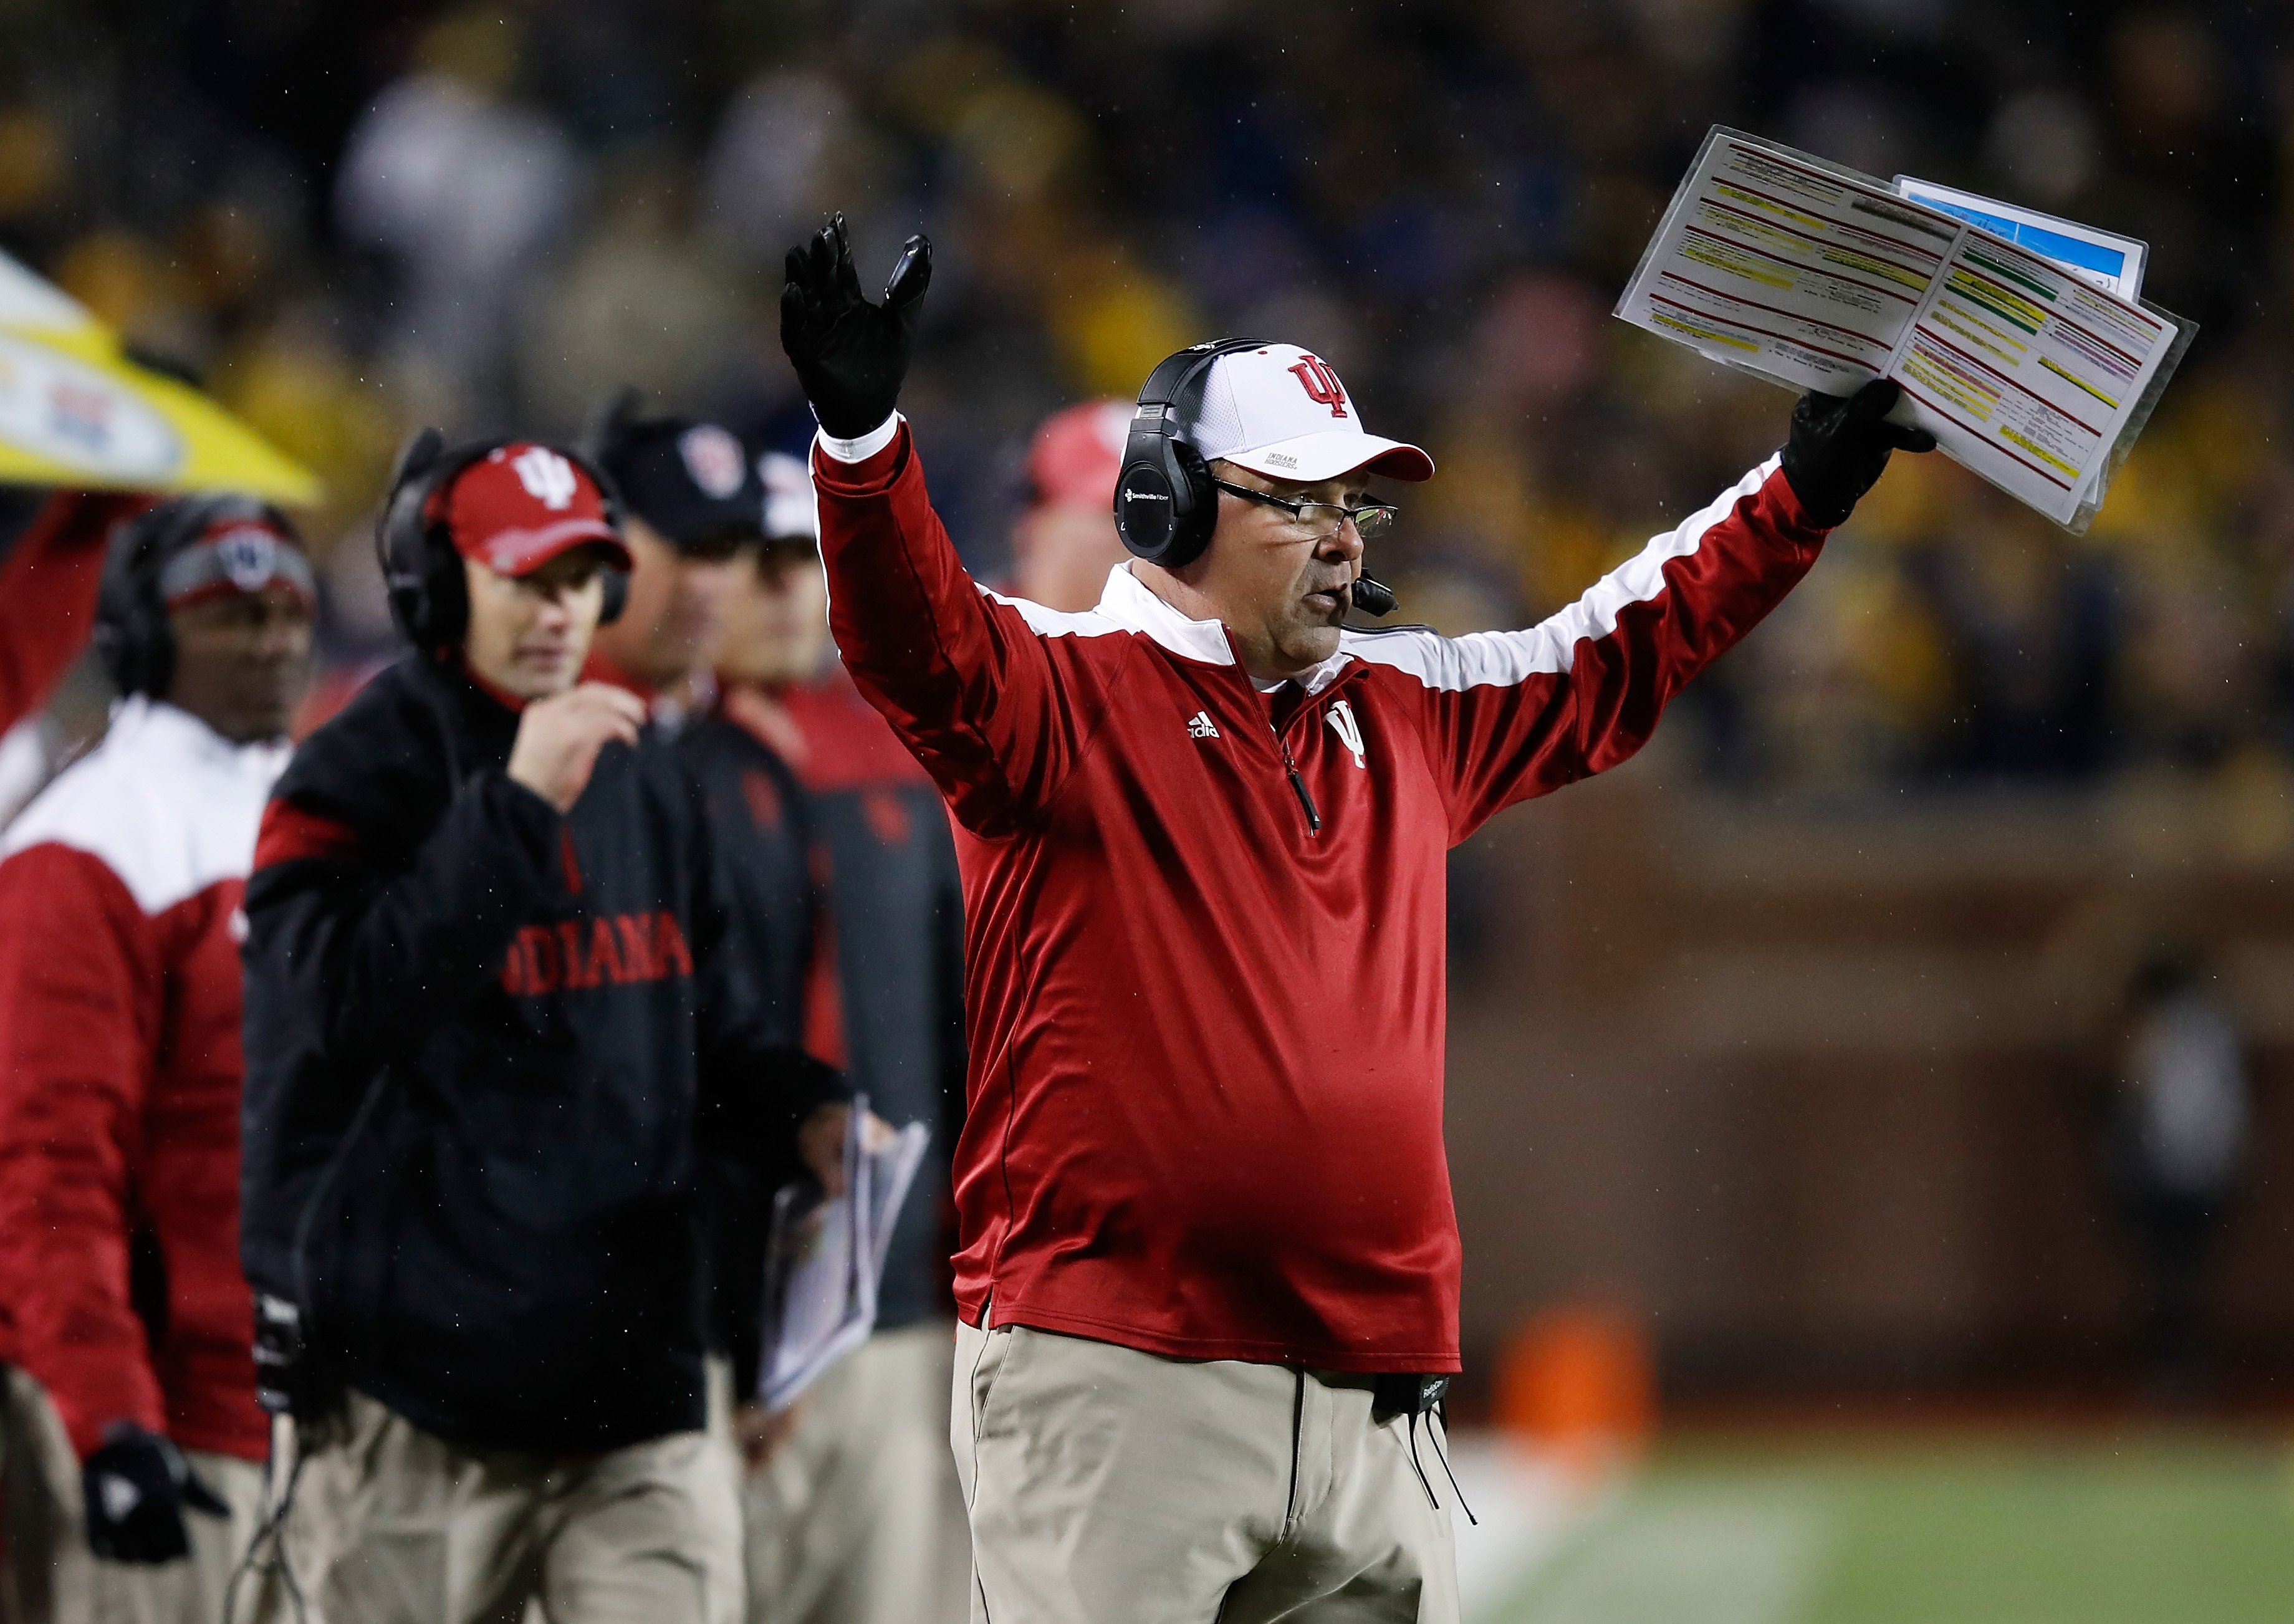 Kevin Wilson is no longer the coach at Indiana after reports surfaced he belittled players who were injured. (Getty Images)